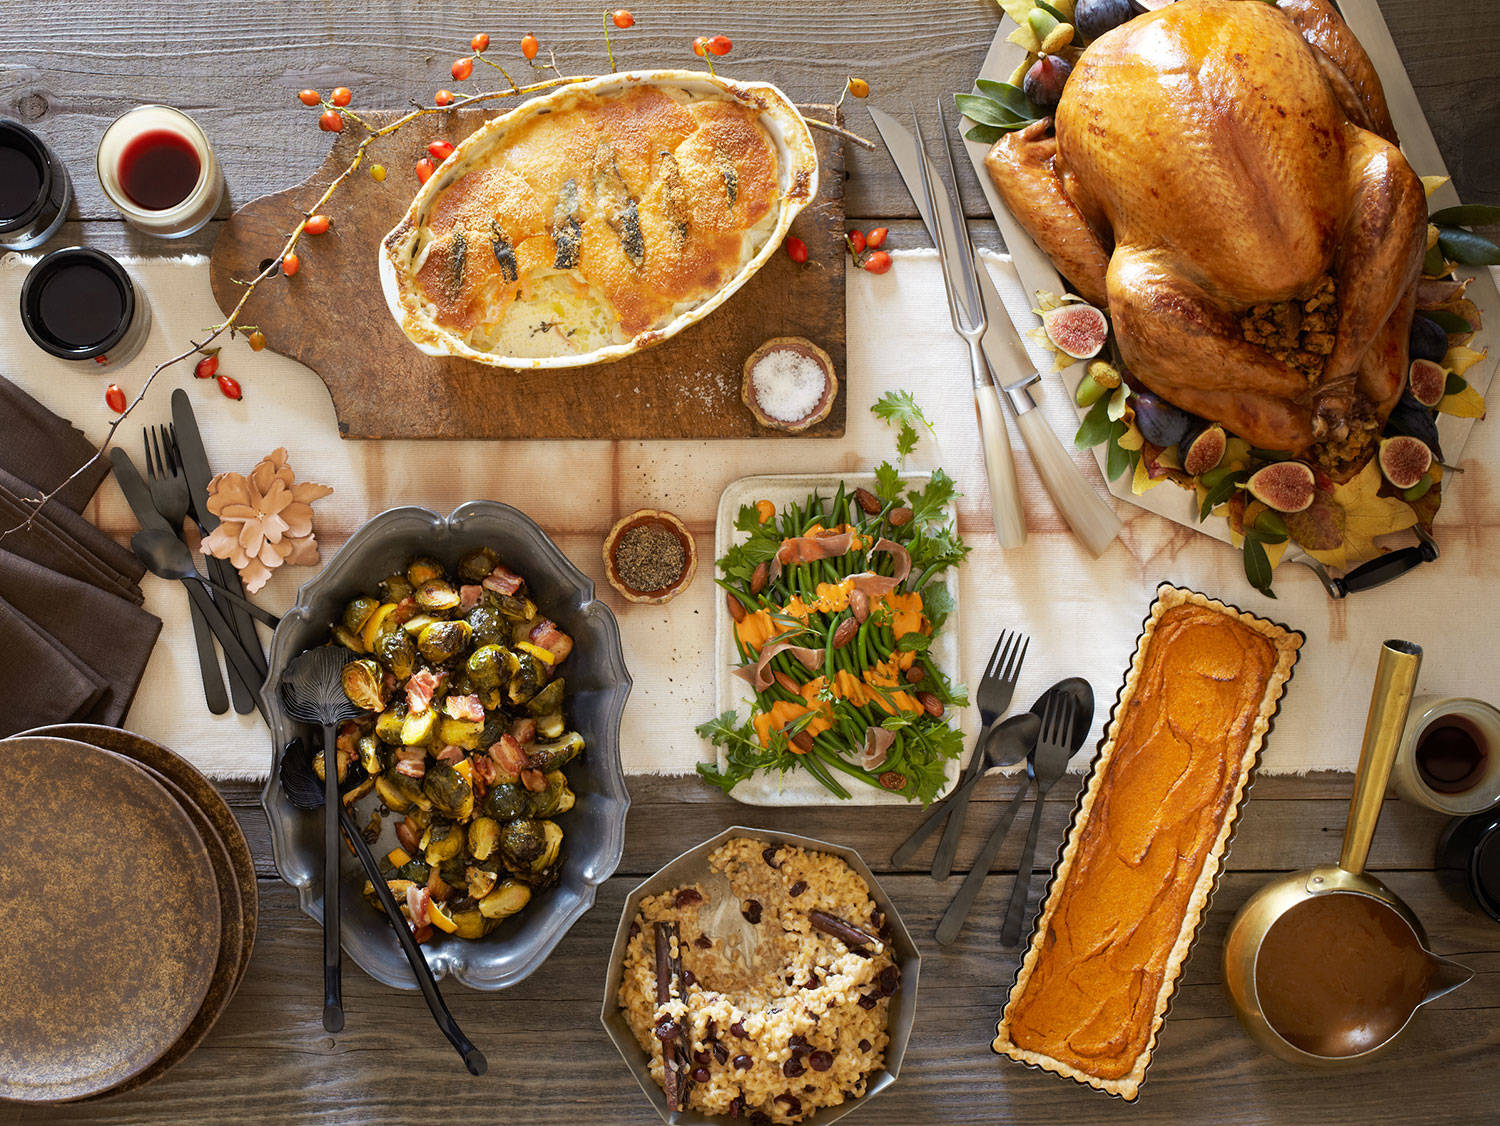 thanksgiving food pictures - HD 1500×1126